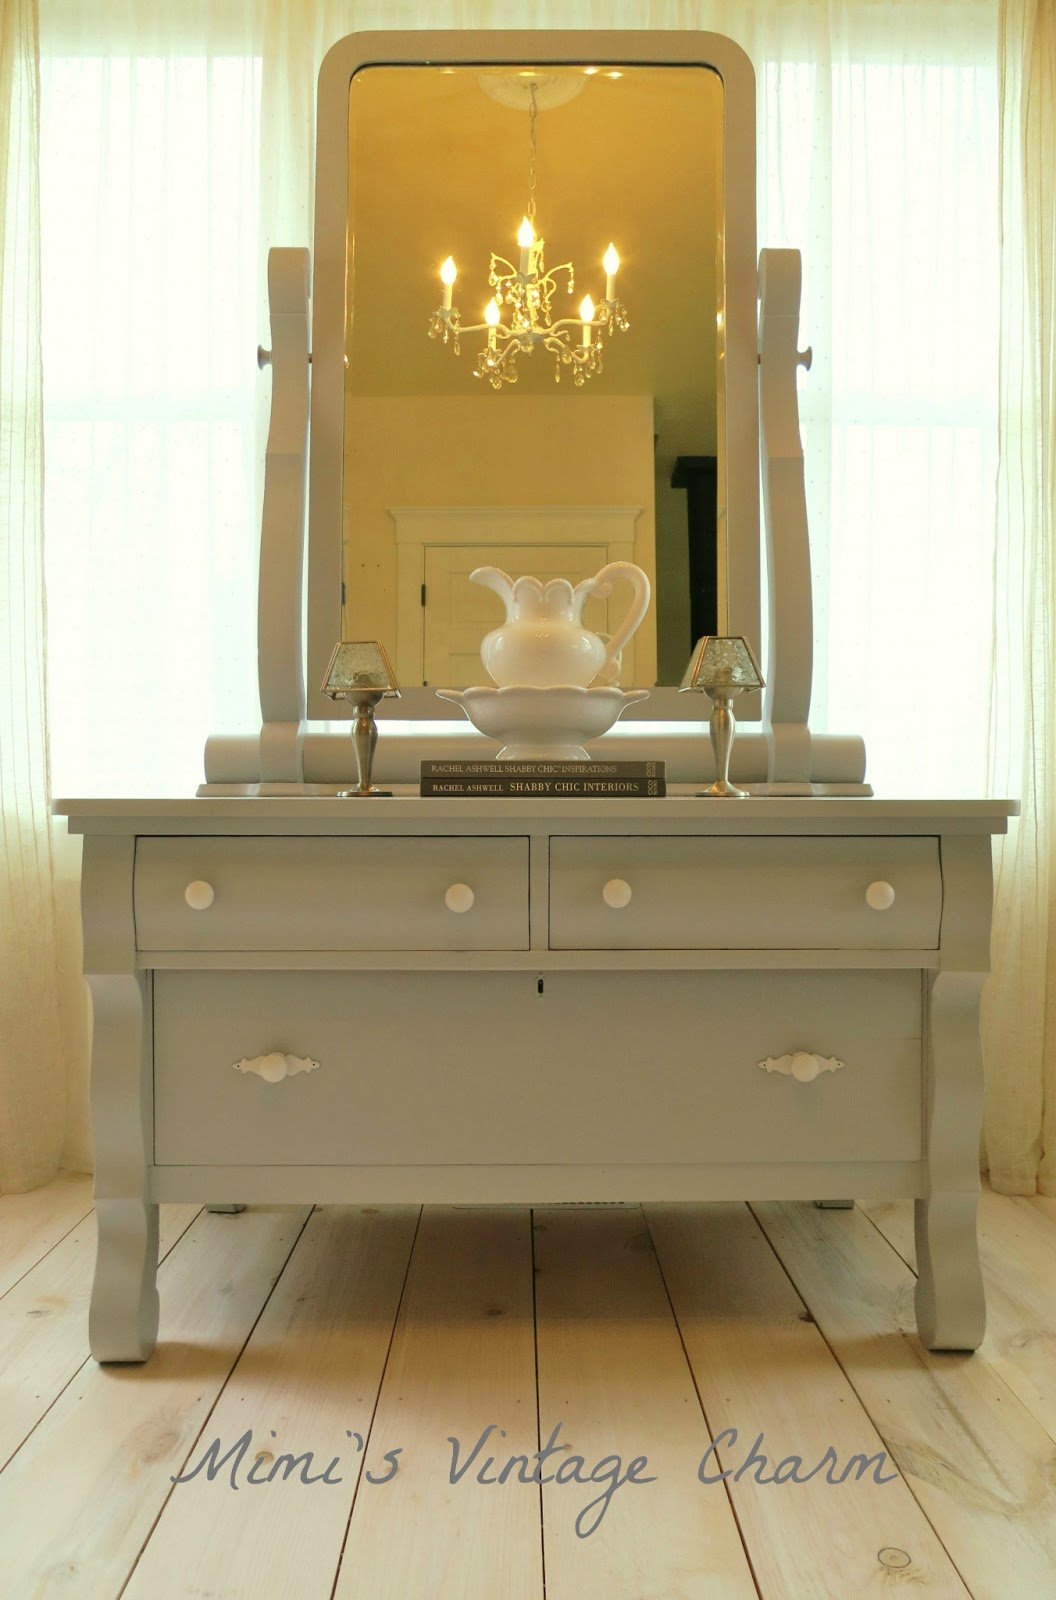 25 Creative Bathroom Vanities Made From Dressers | eyagci.com on dressers turned into bathroom vanities, dressers furniture for bathroom, dressers as entertainment centers, dressers as benches,